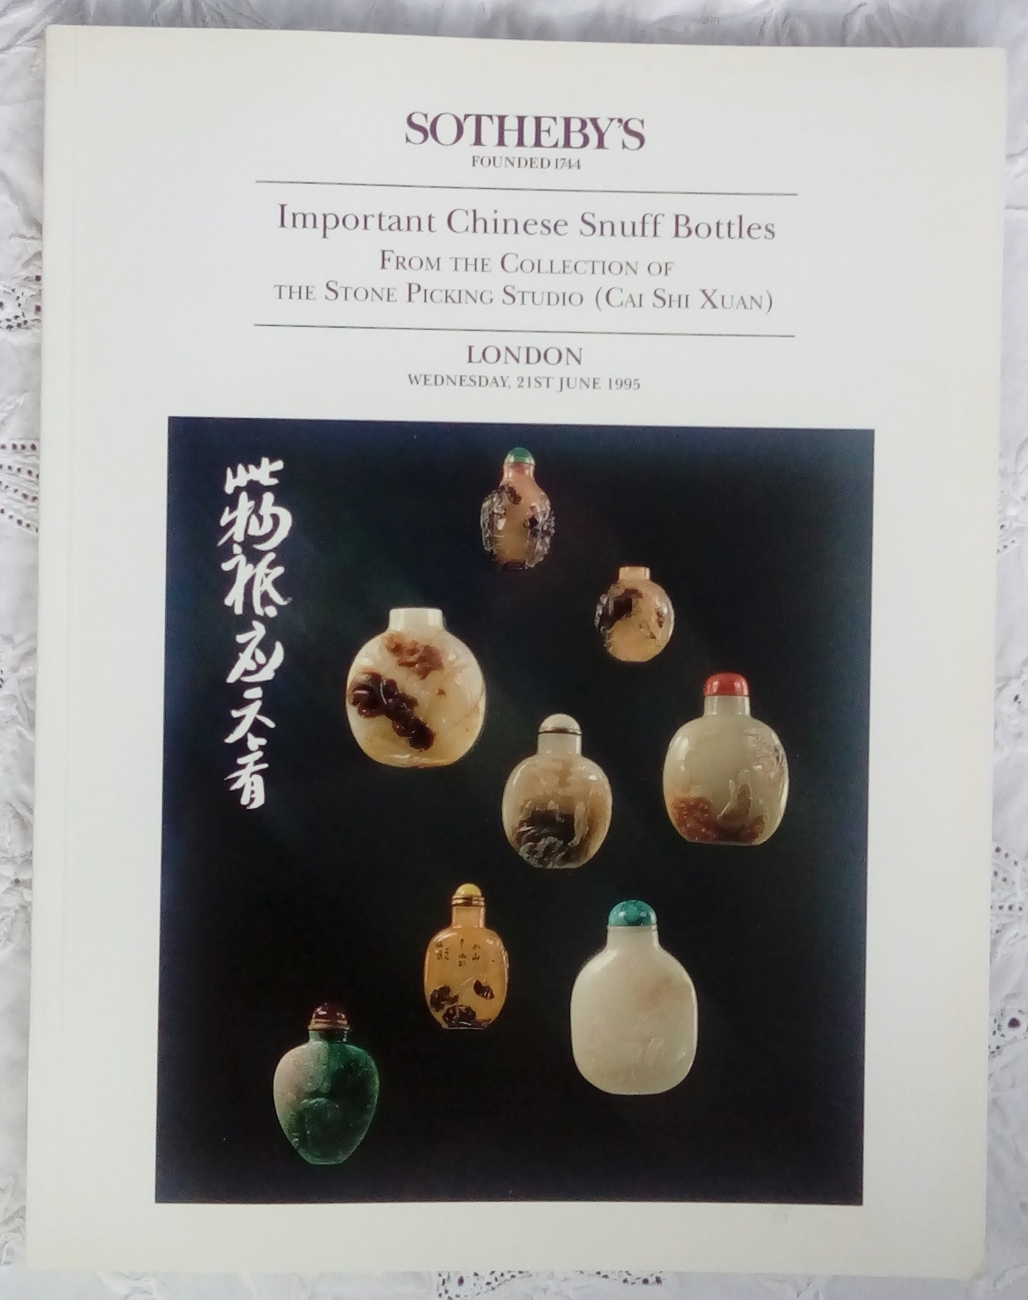 Sothebys Chinese Snuff Bottles From The Stone Picking Studio 21 June 1995